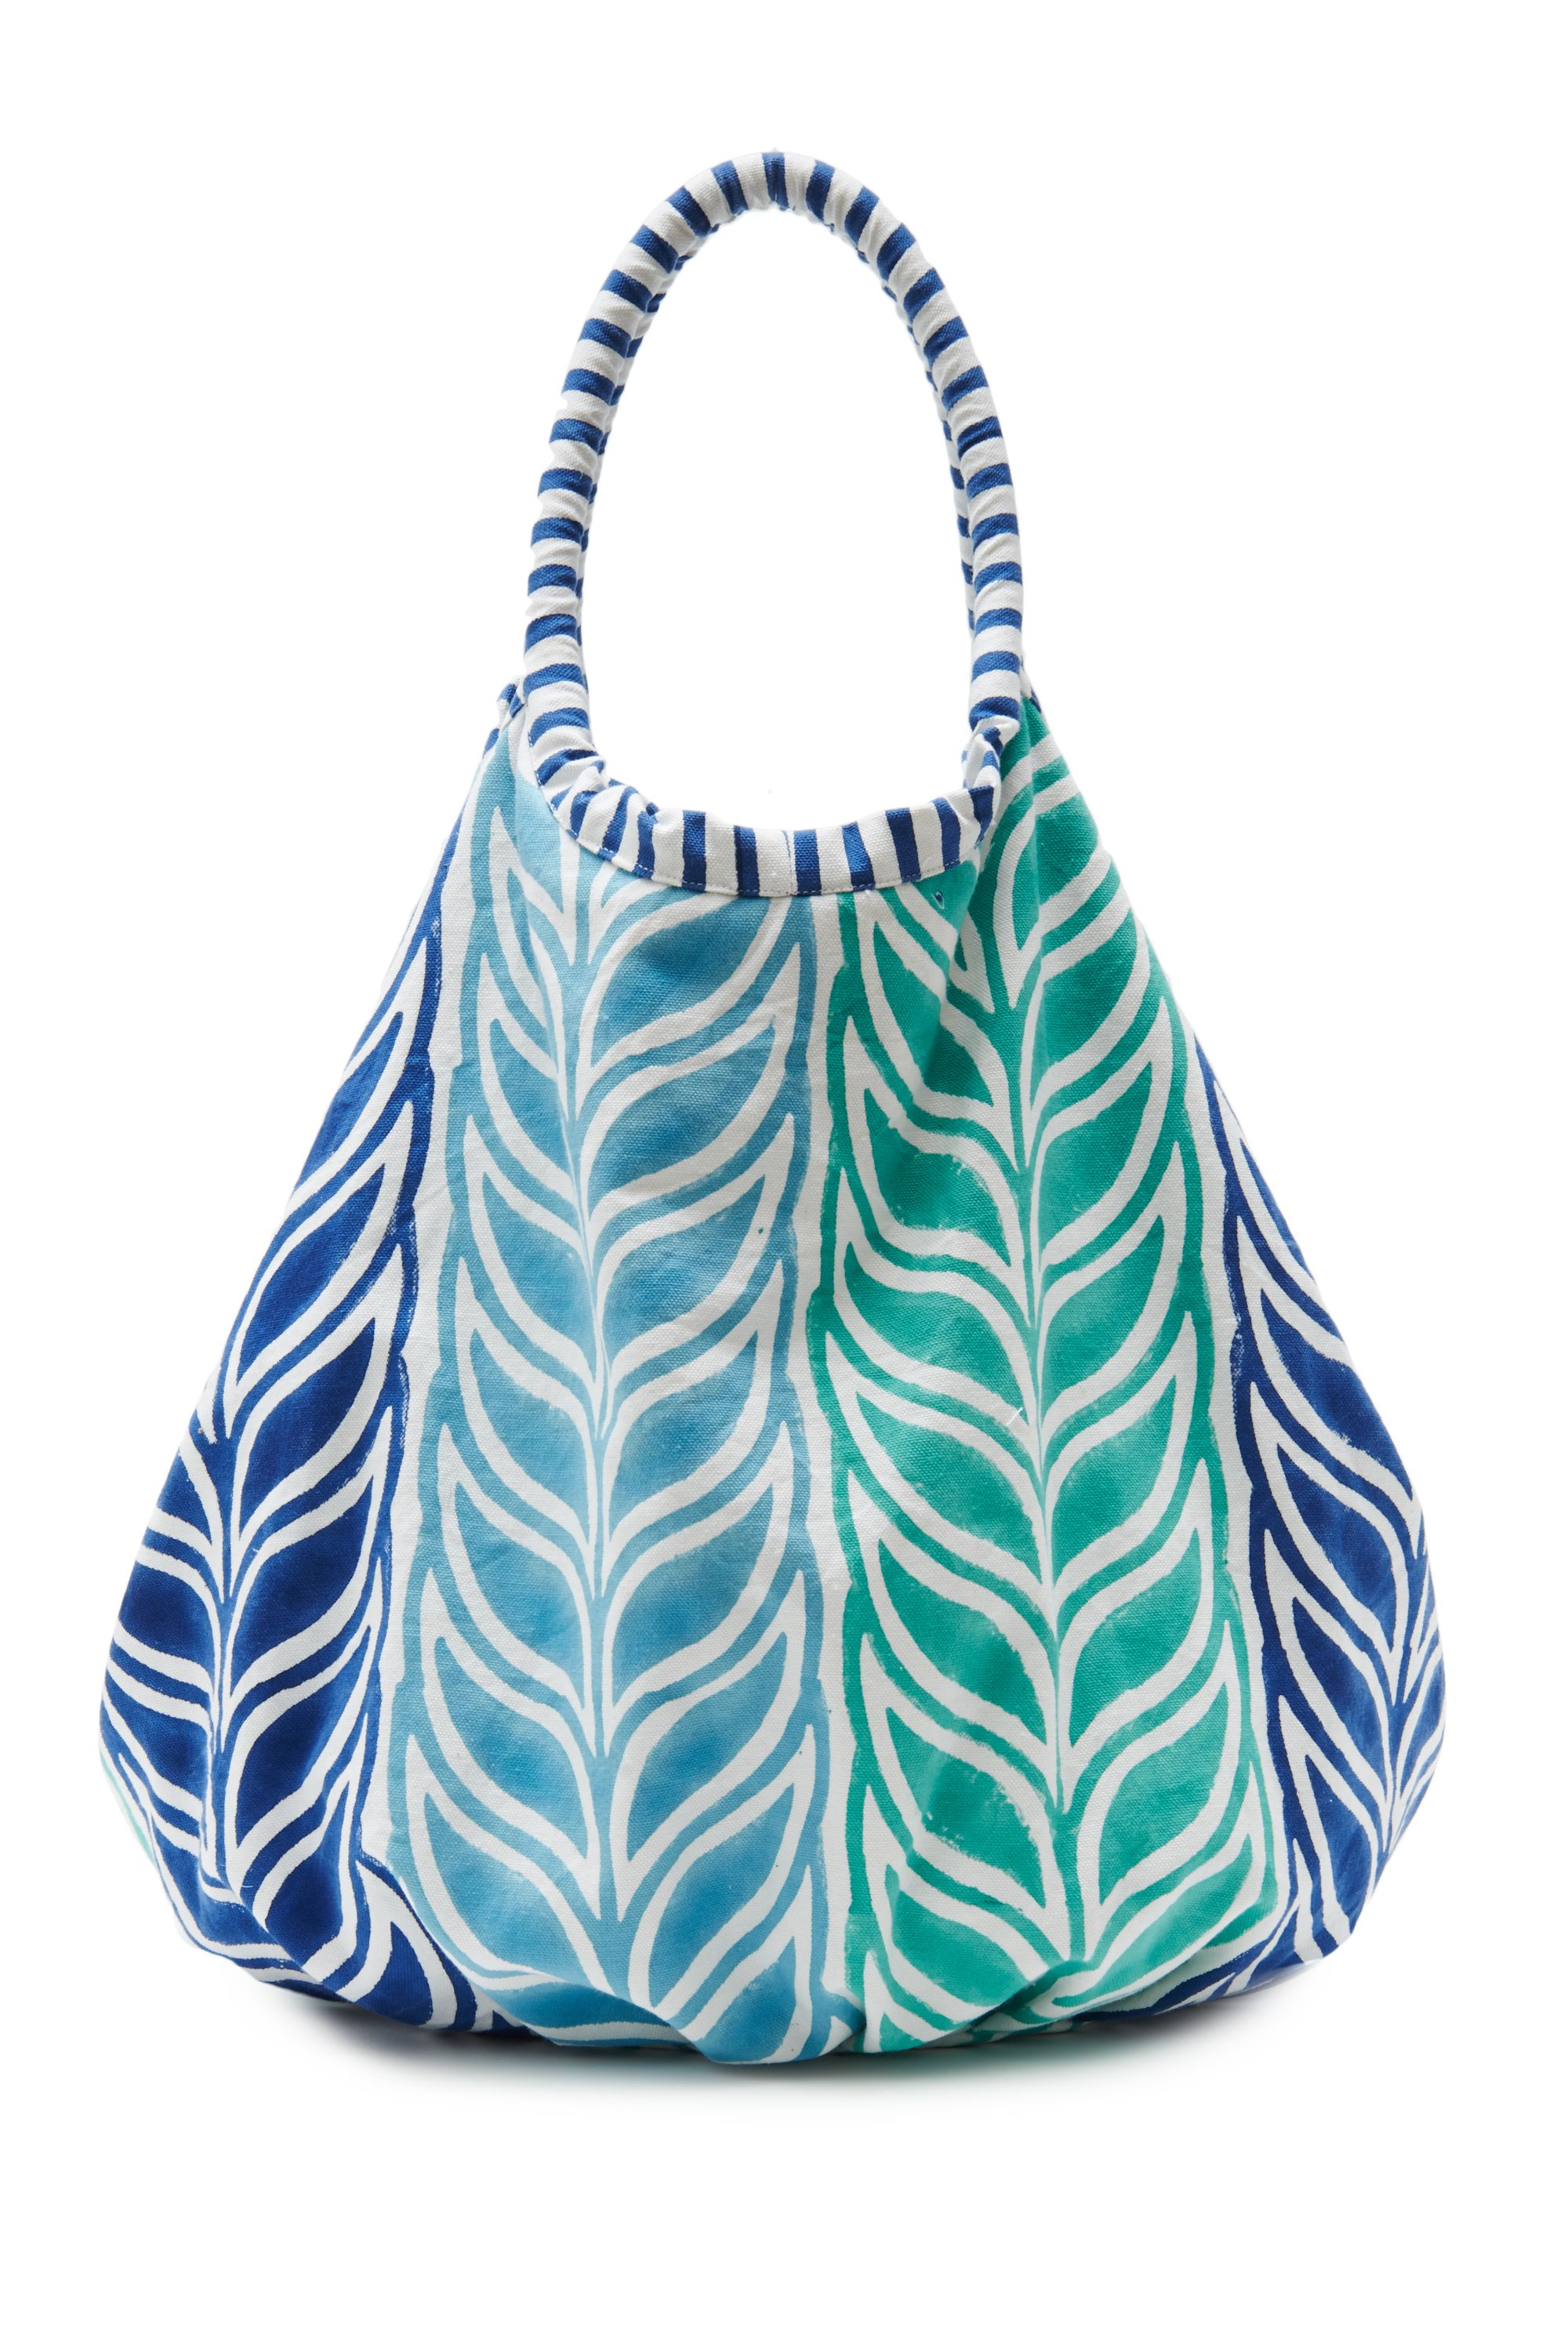 A Roberta Roller Rabbit Bondi Beach Bag in our Lantana block print ...